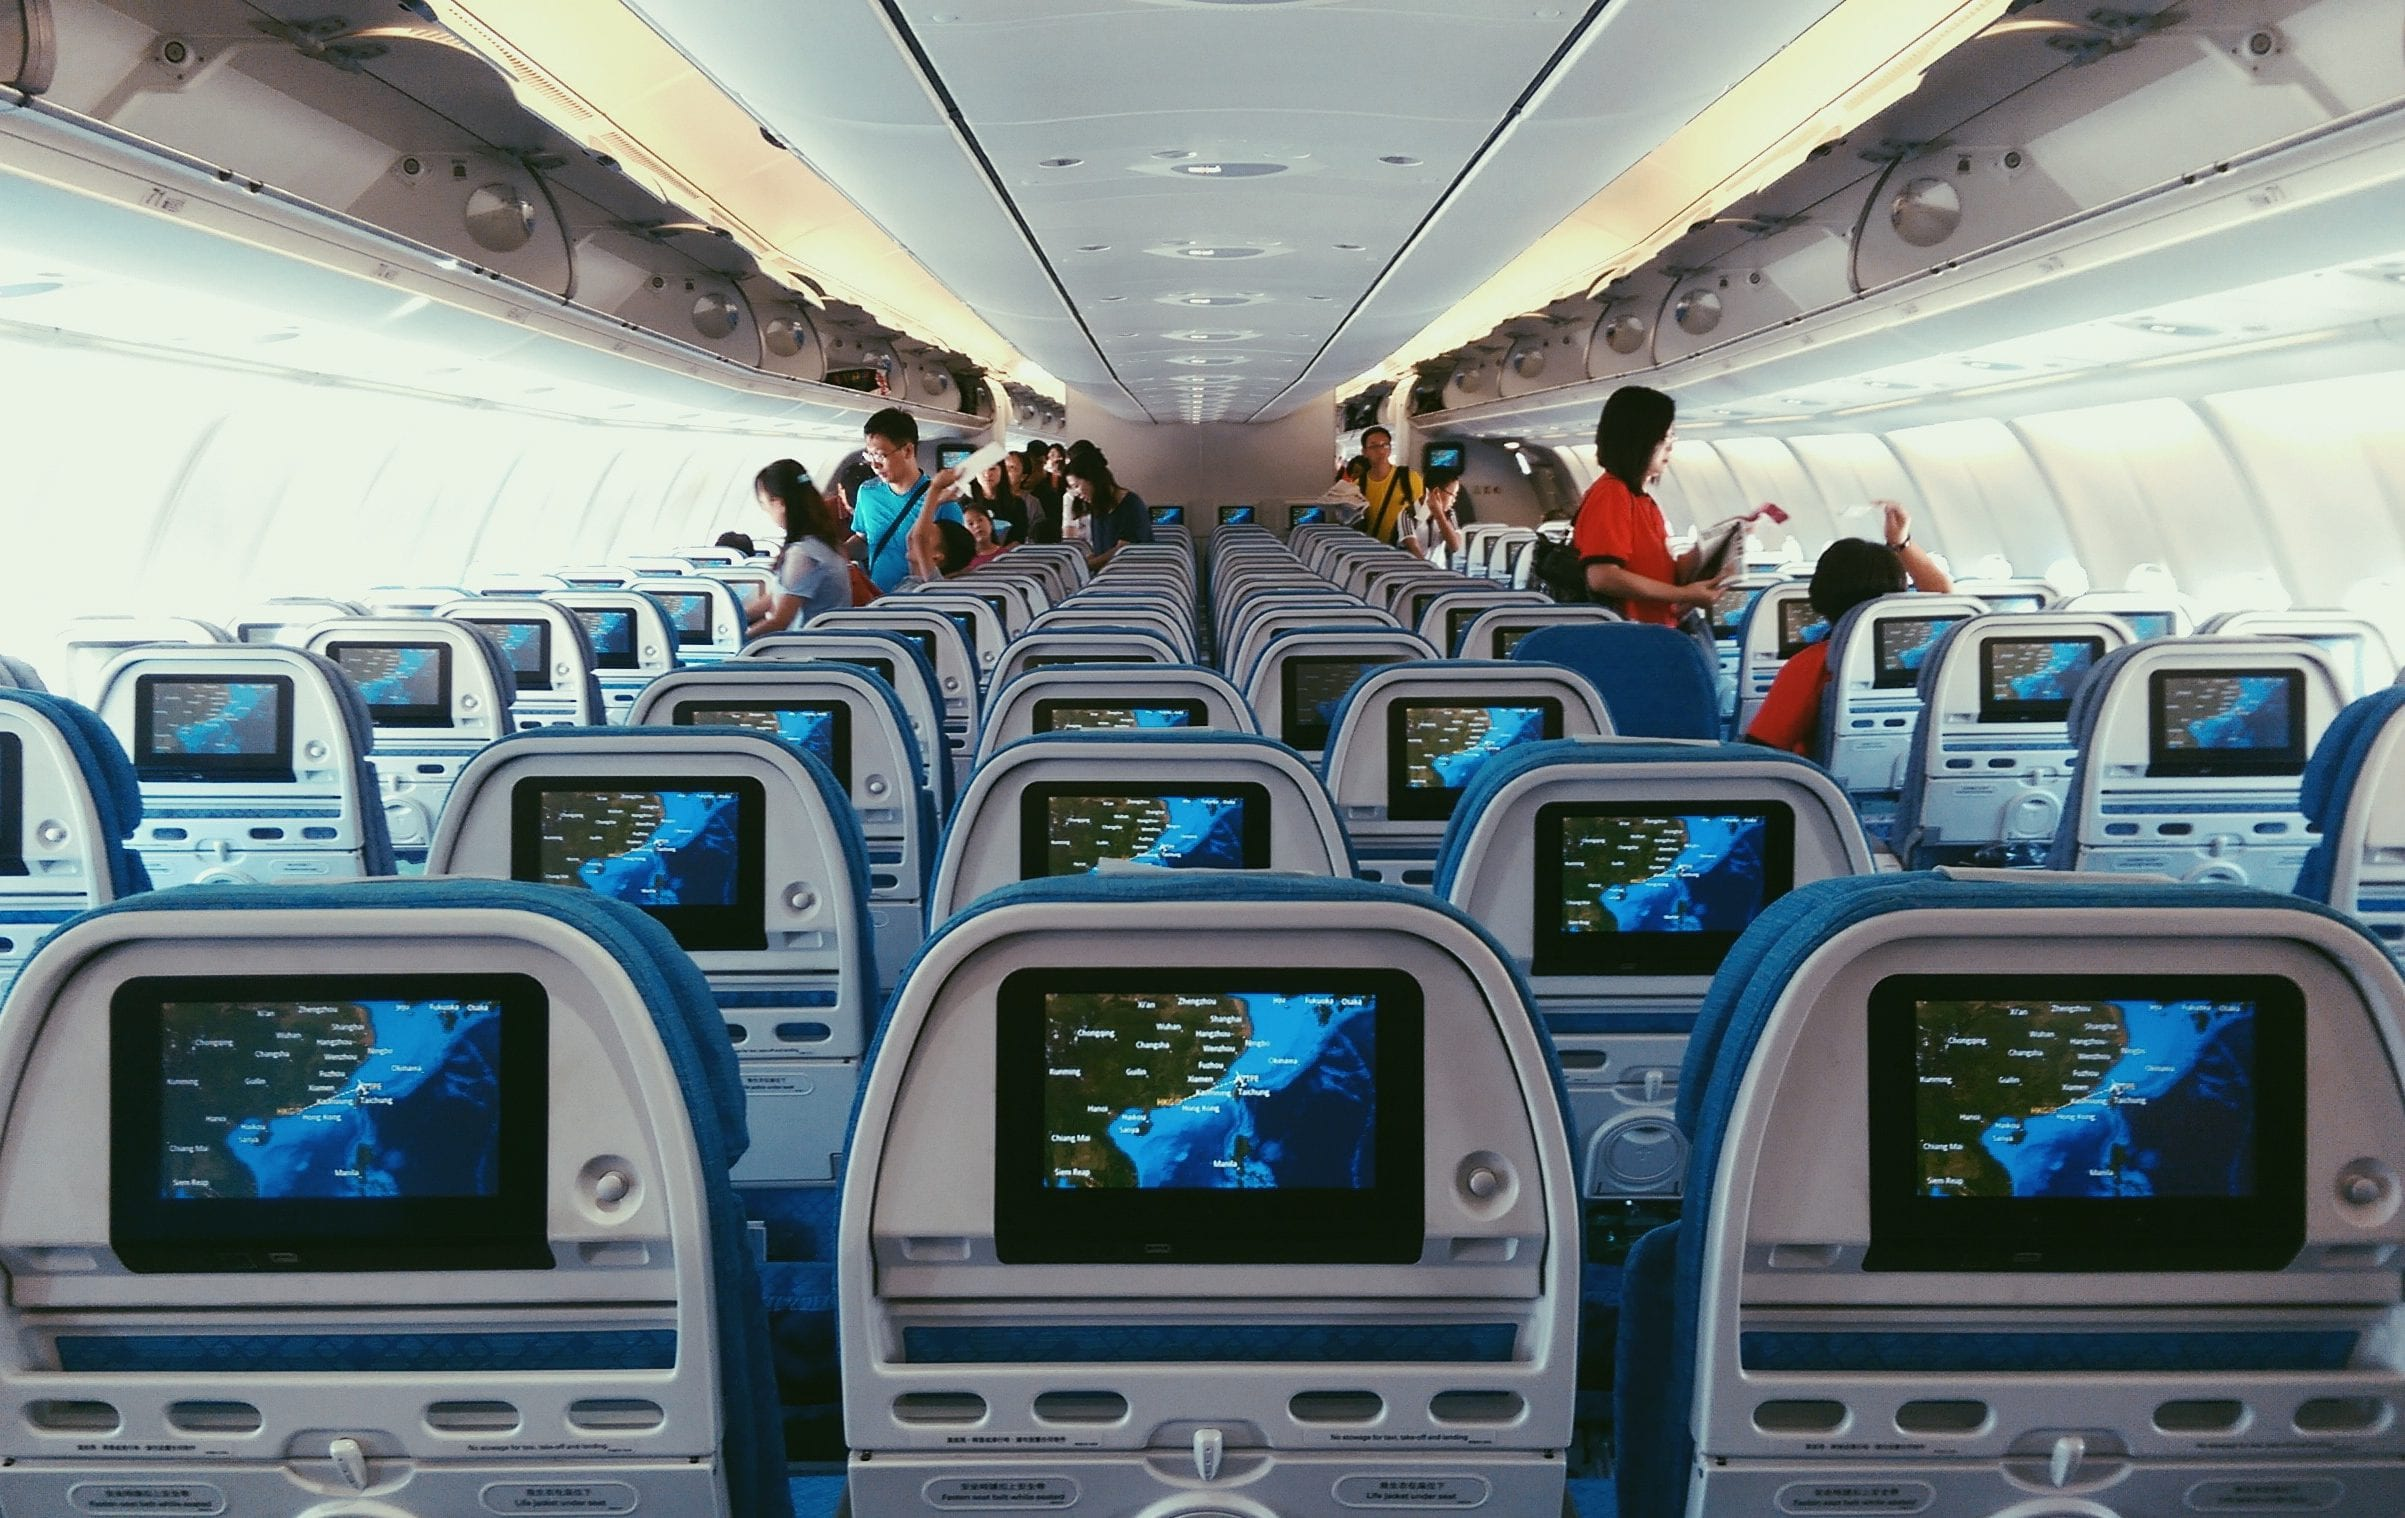 dragonair flight cabin